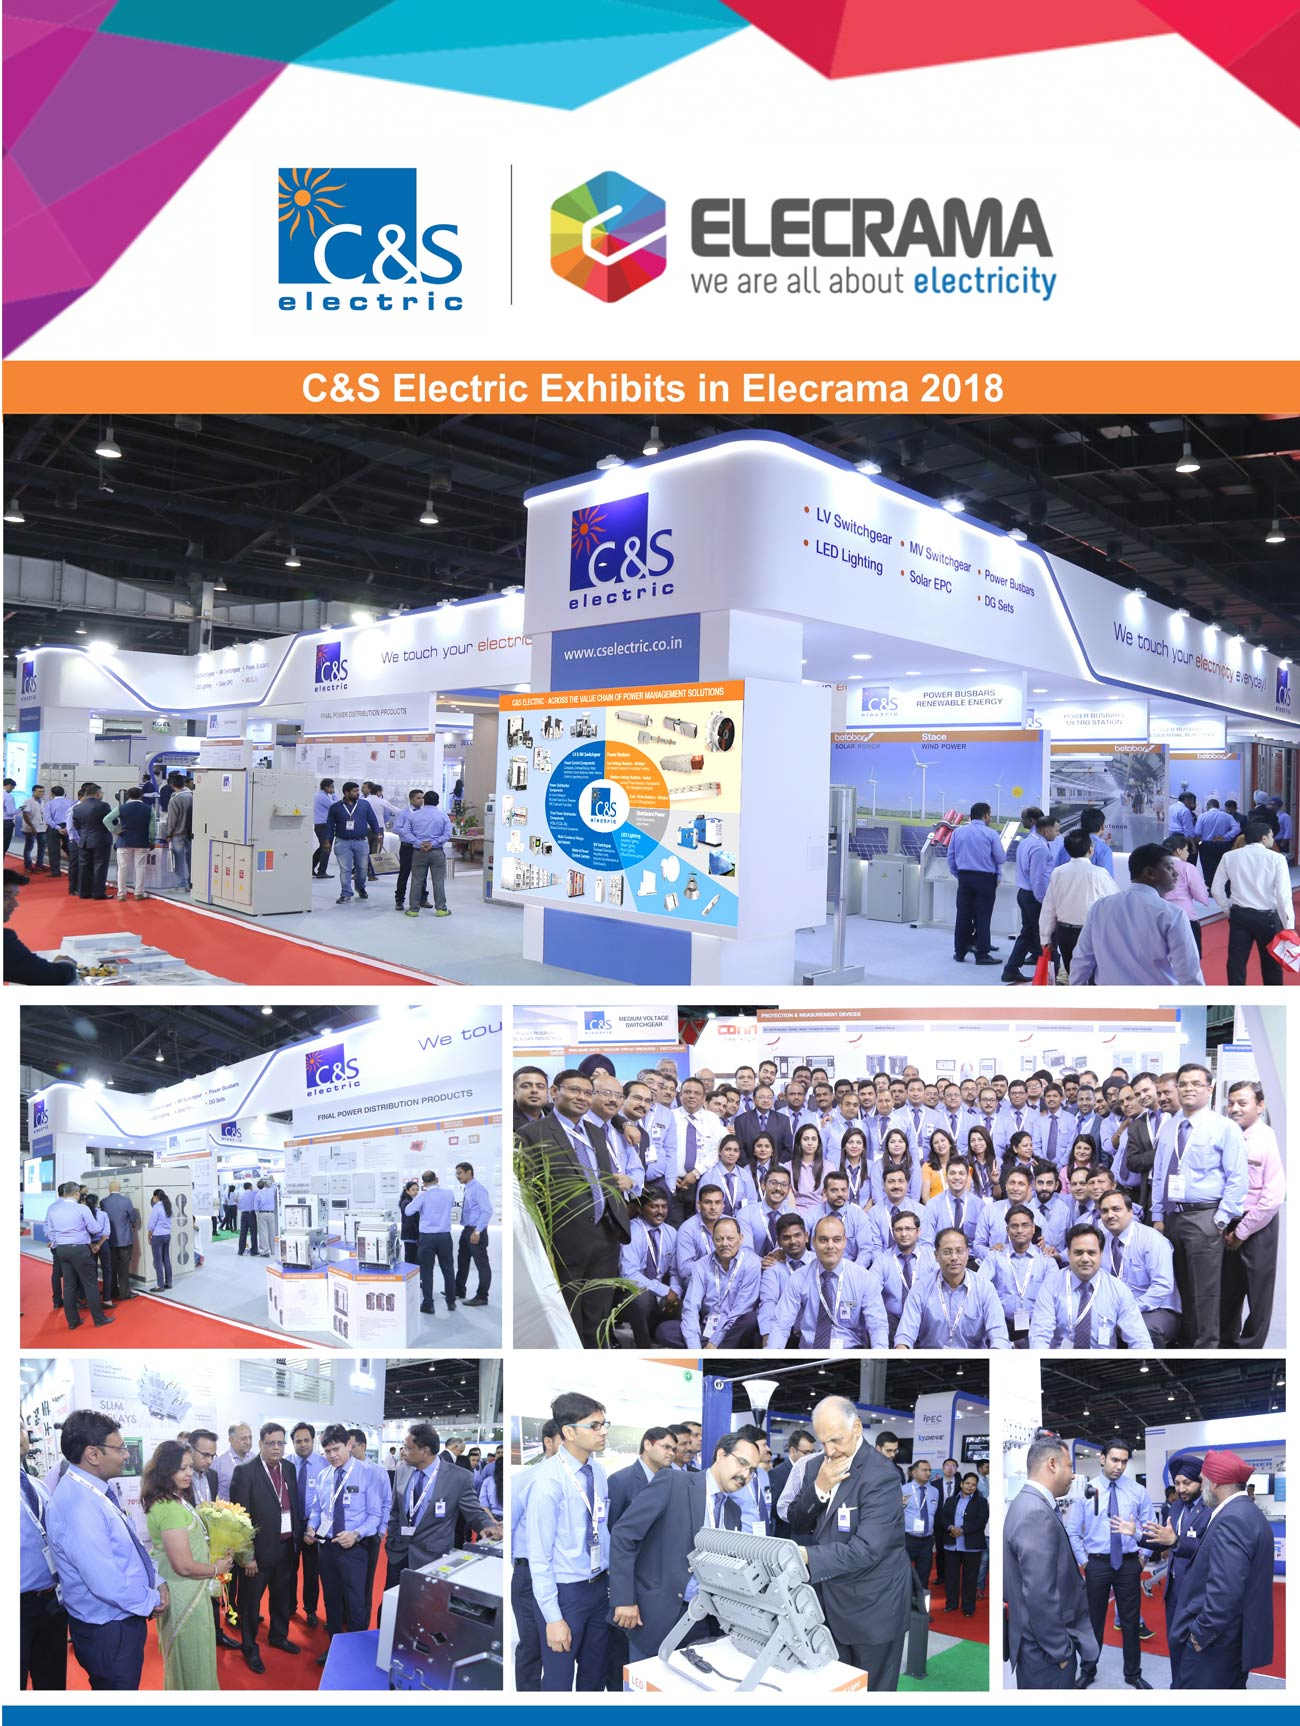 C&S Electric Exhibits in Elecrama 2018